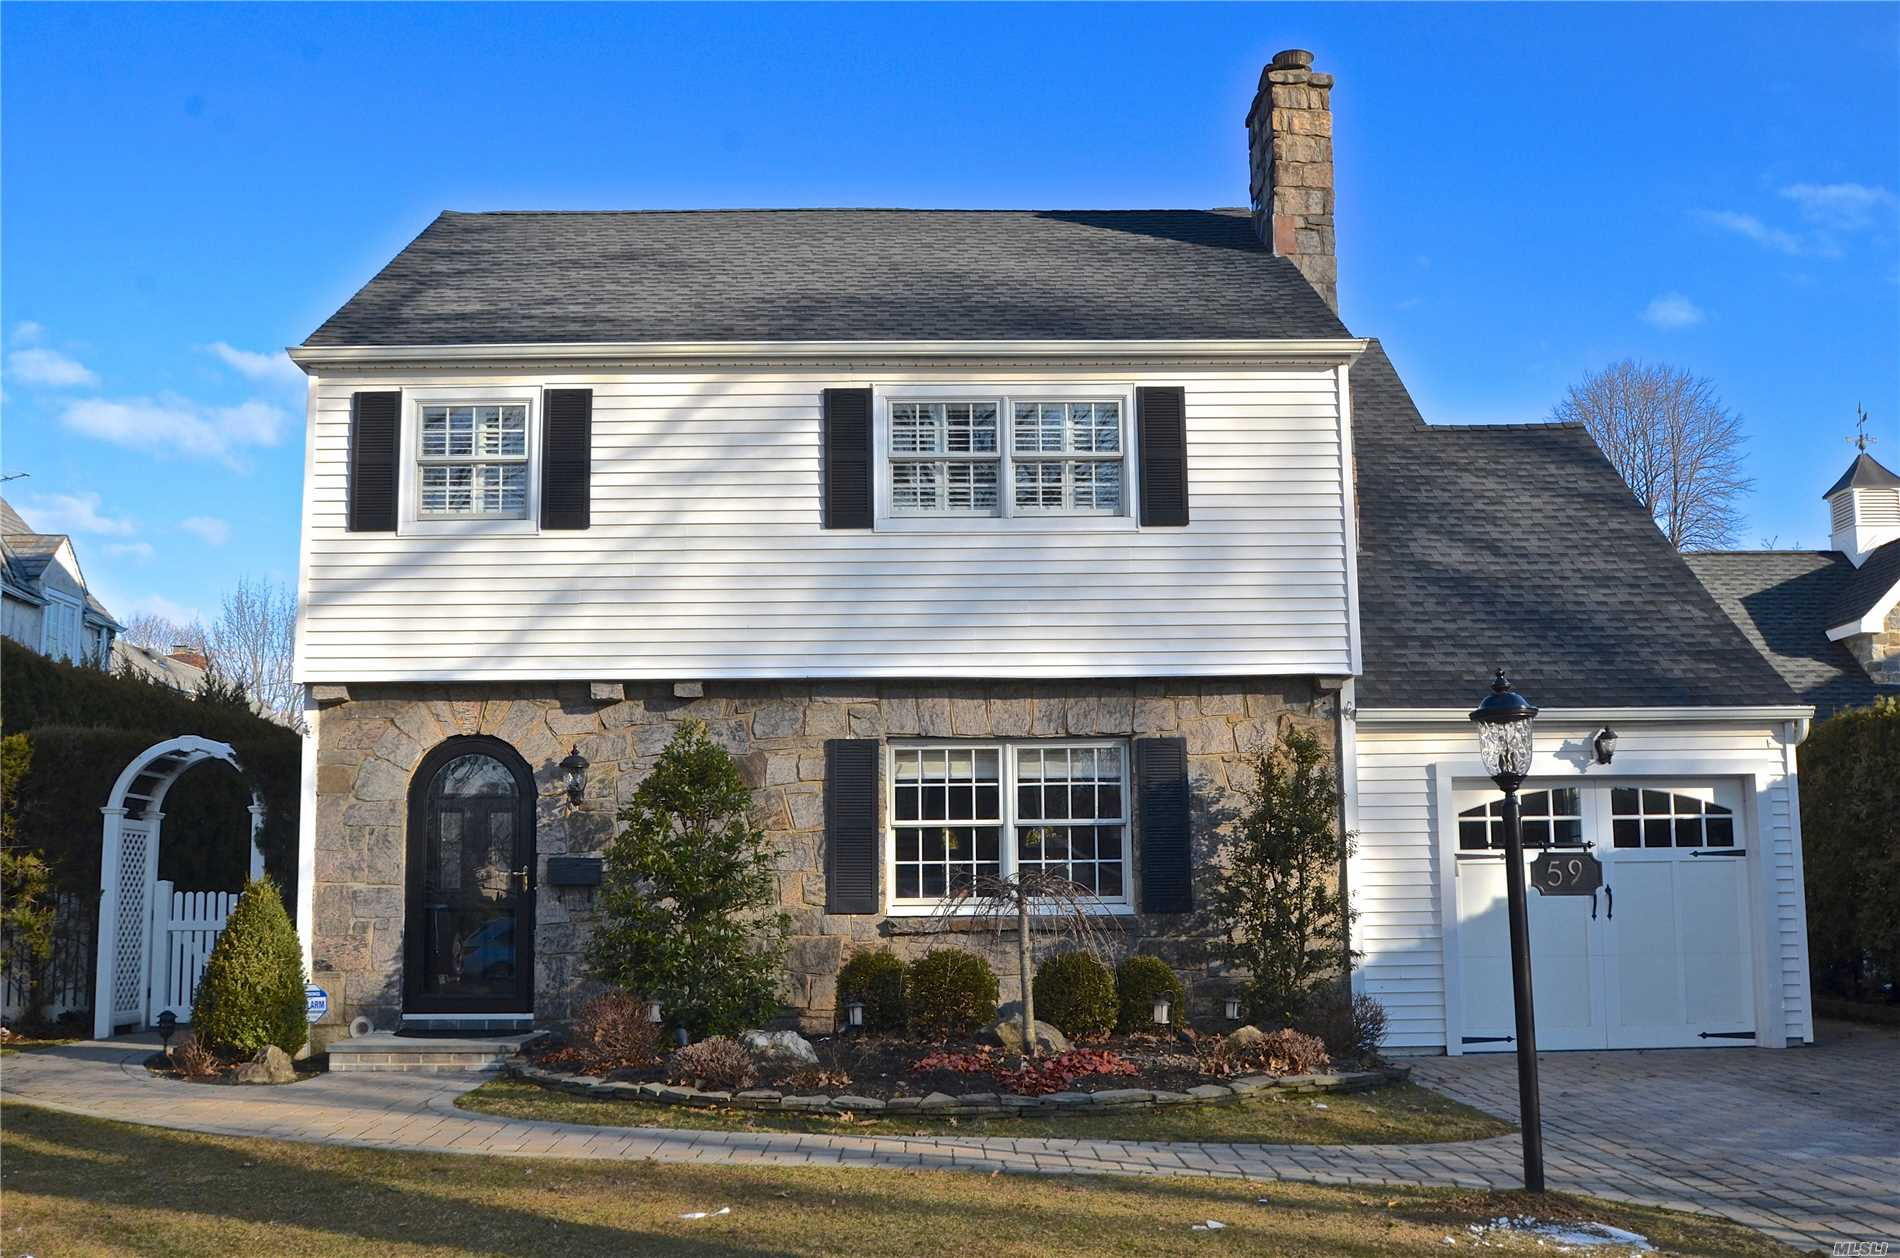 This beautiful & pristine Colonial is located in a prime location in the heart of the Mott Section. It offers an Open Floor Plan featuring a LR /DR w/ French Doors & custom moldings throughout. EIK flows into a sun-drenched Den w/ Palladium windows, & Half Bath. The 2nd Floor has a MBR en-suite w/walk-in closet, 2 Add'l BR's & Full bath. The Private backyard with a Bluestone patio is an entertainer's delight. Incl an updated roof, walkway, paved driveway, CAC, IGS, & water filtration system.